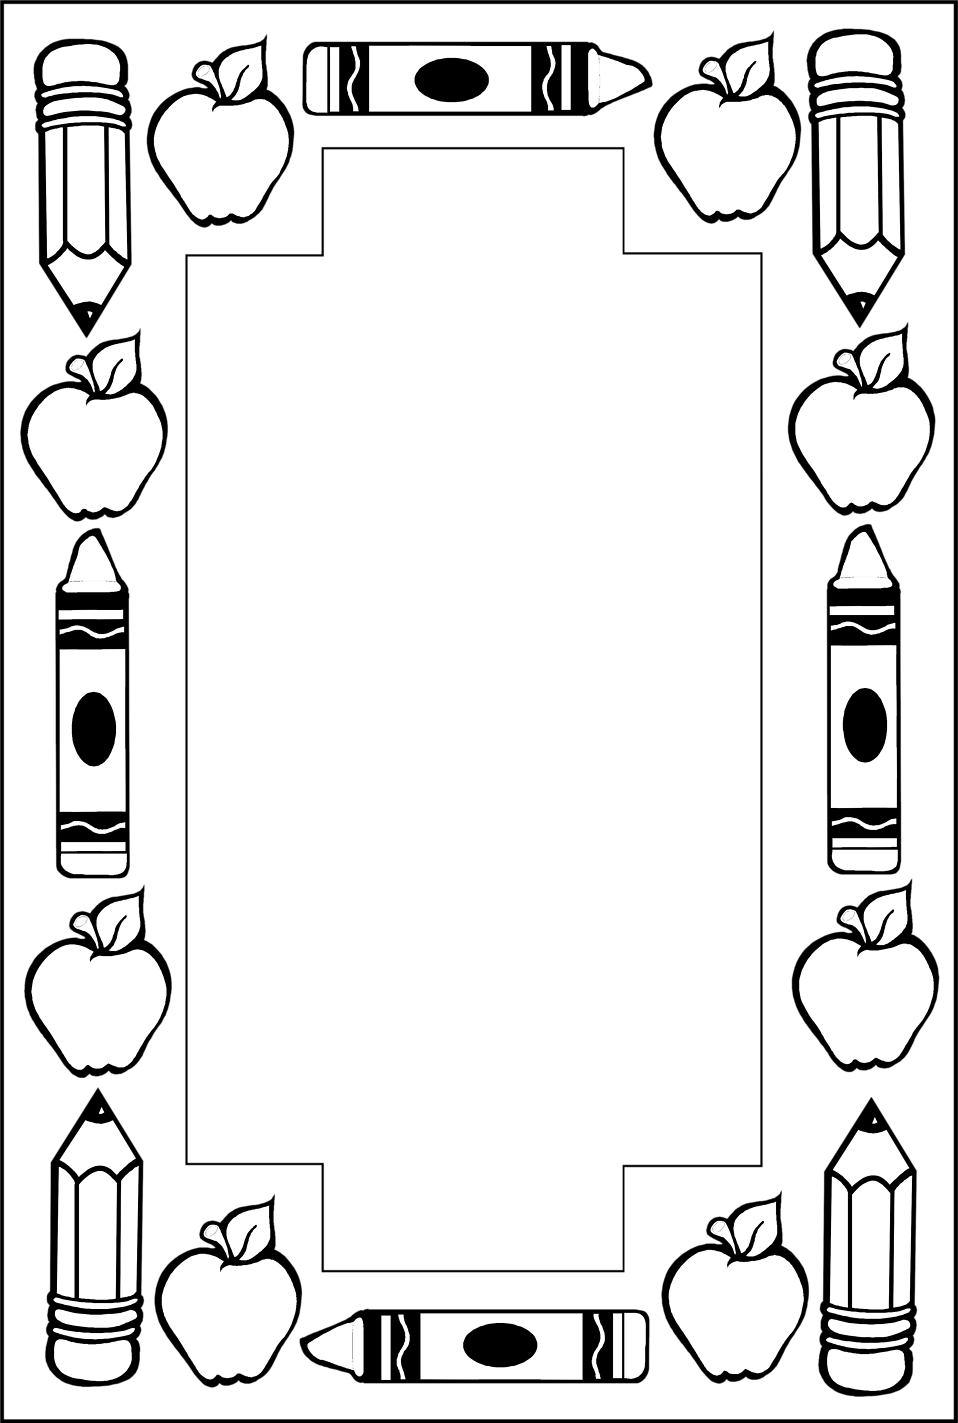 png black and white stock School clipart borders. Border free stock photo